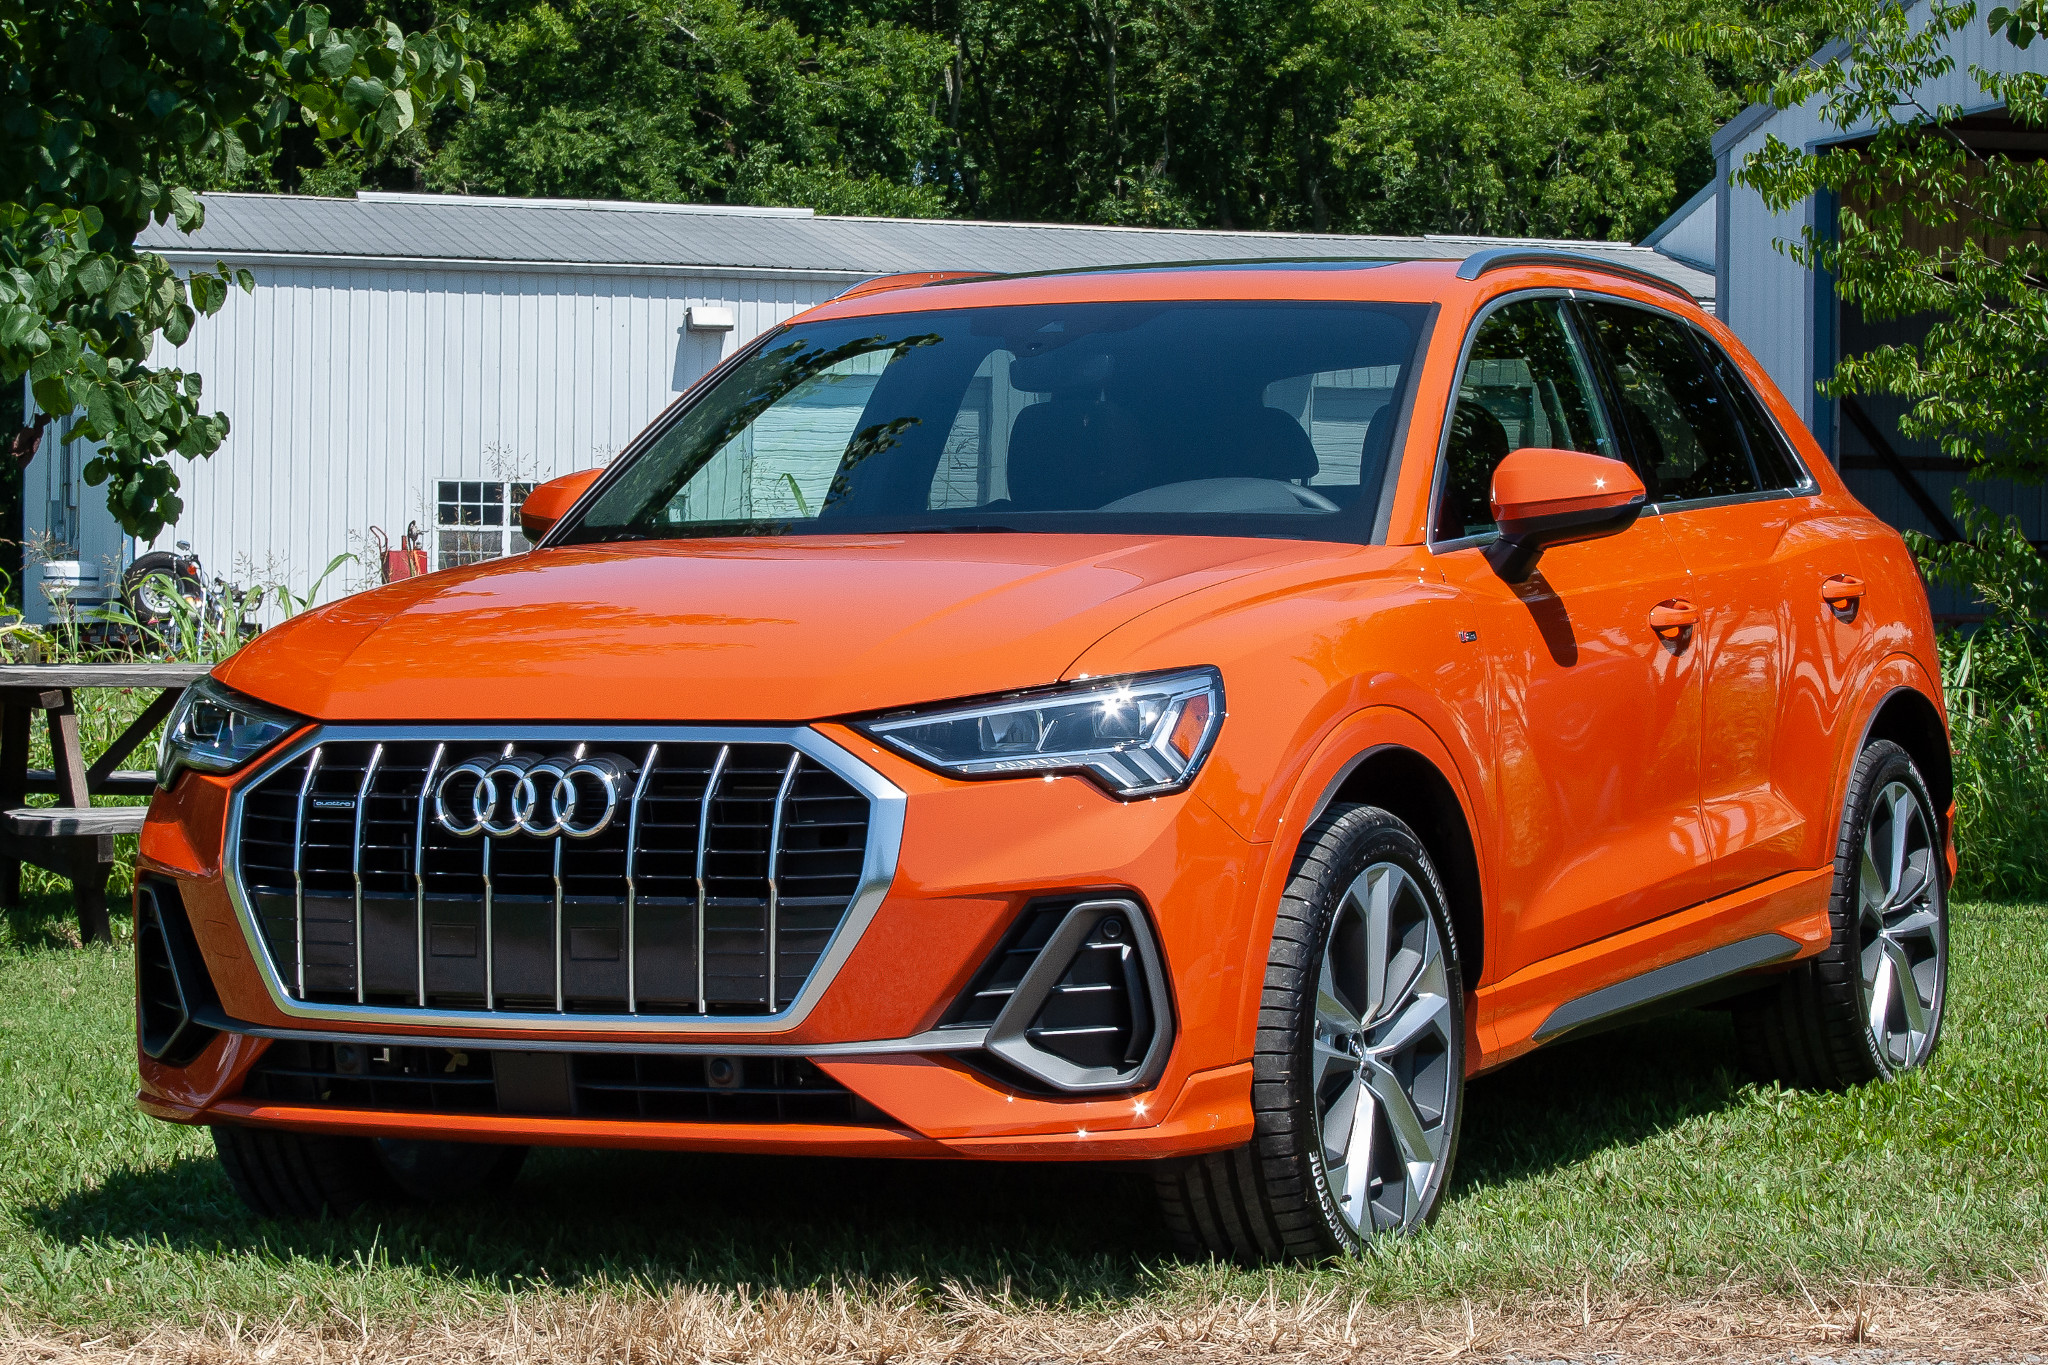 Keep It Simple, Stupid: How Well Does the 2019 Audi Q3 Single-Screen Setup Work?